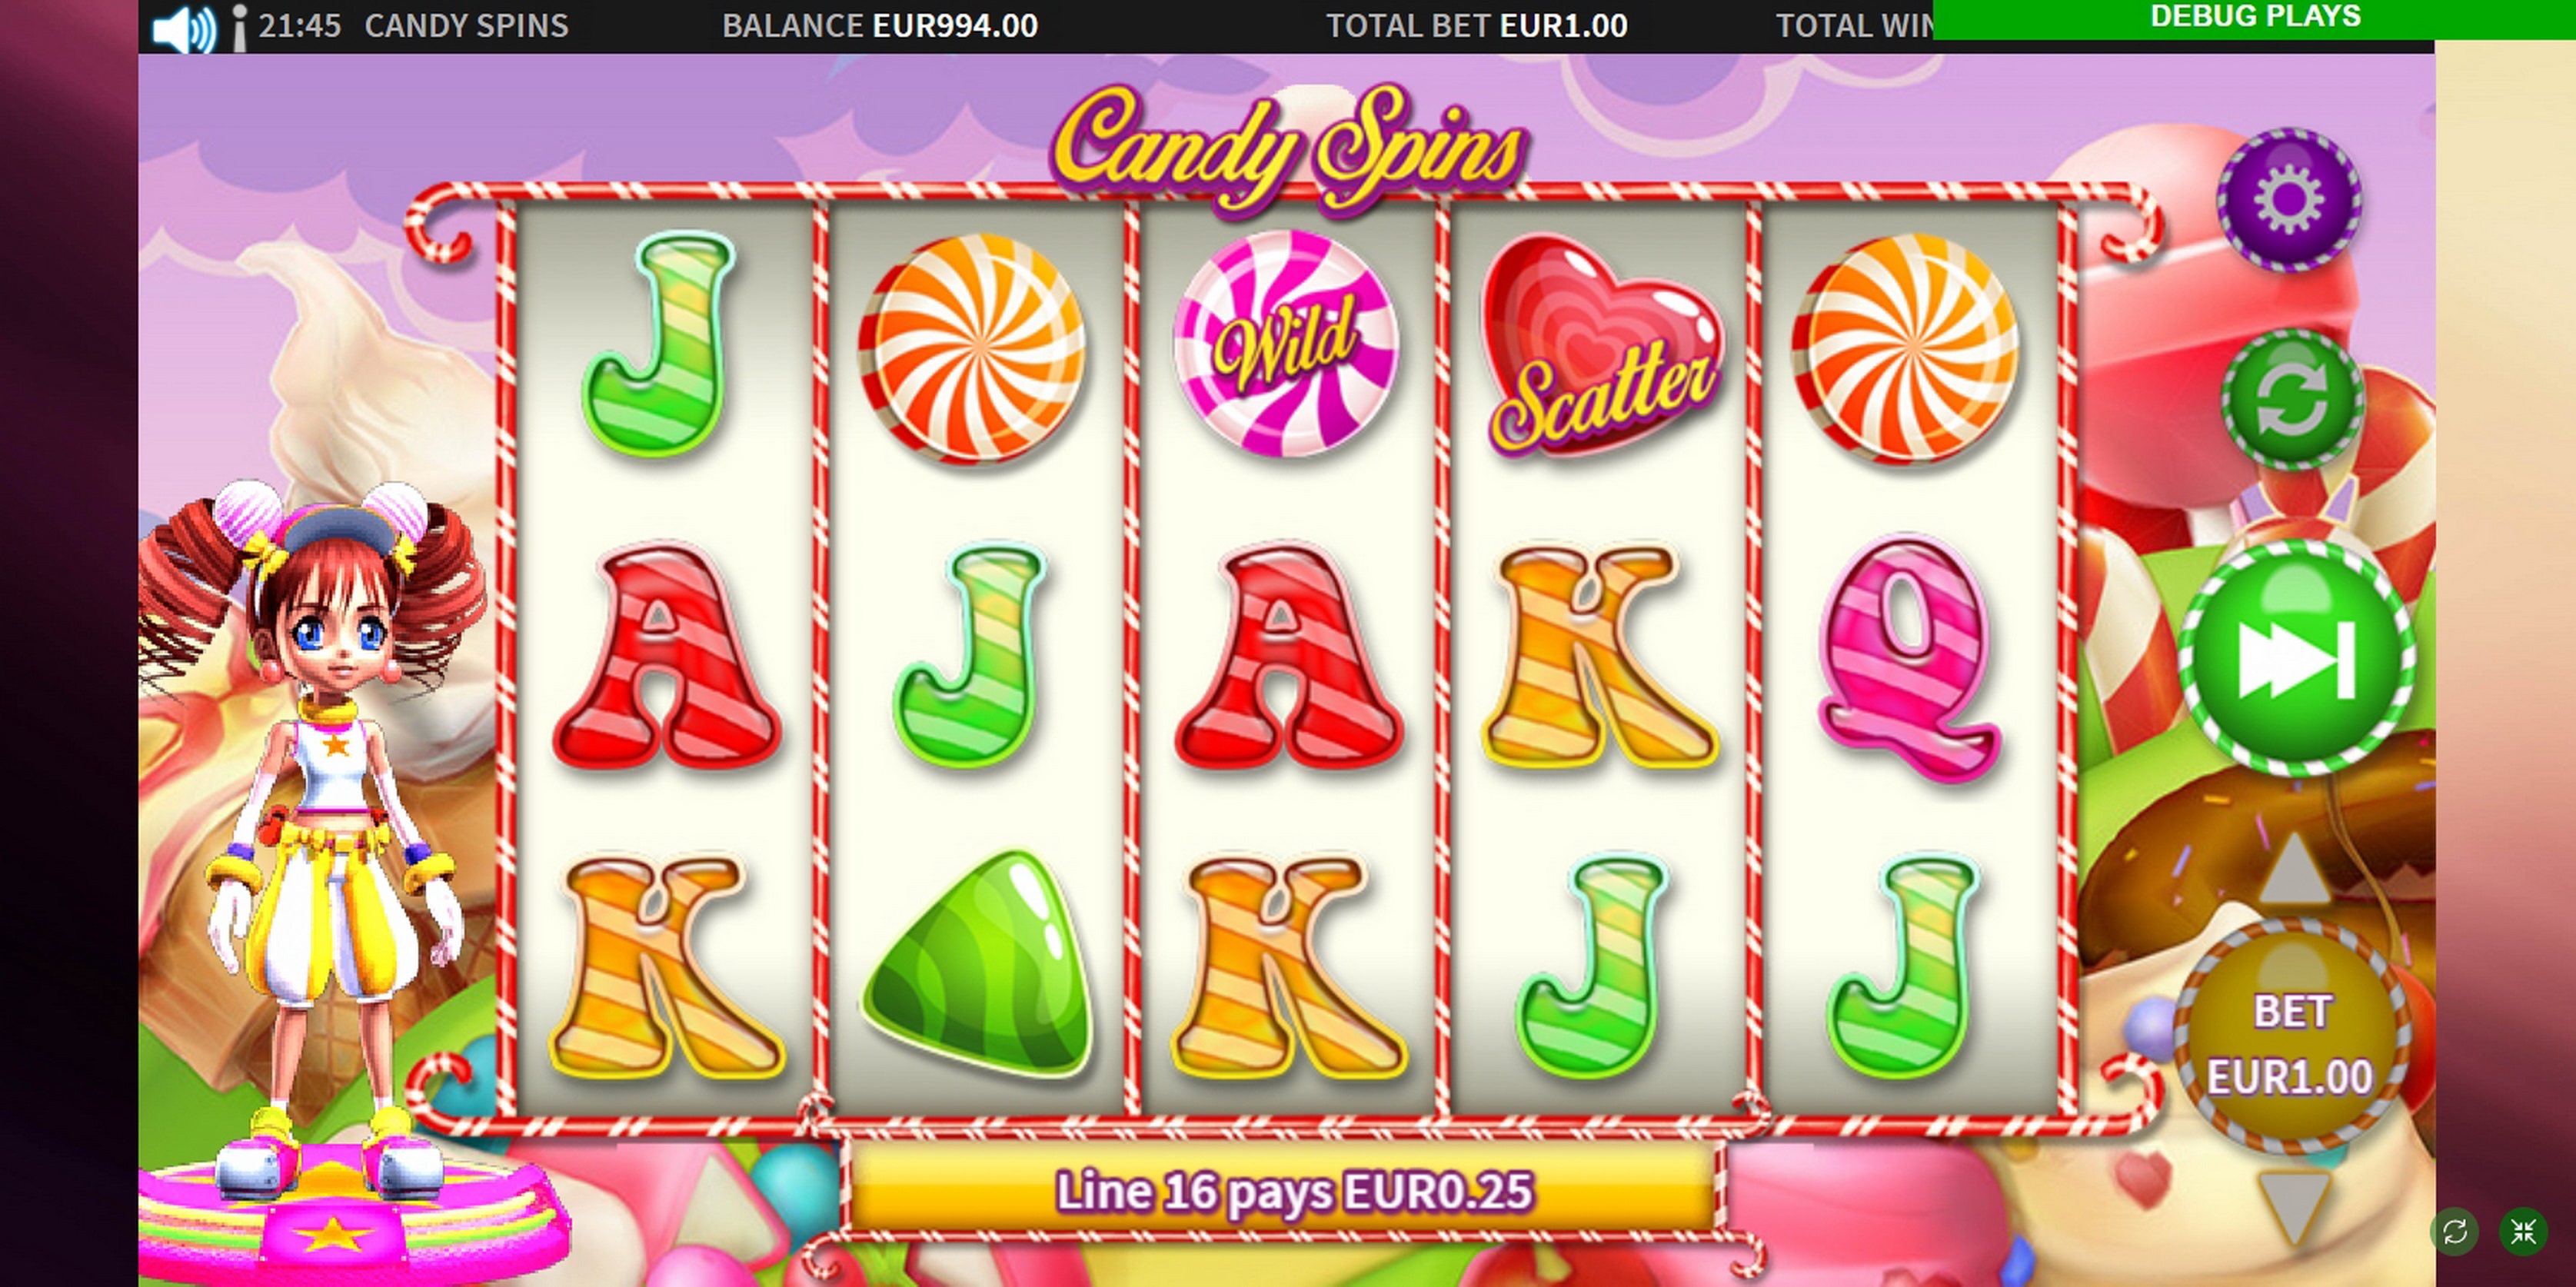 Win Money in Candy Spins Free Slot Game by MetaGU